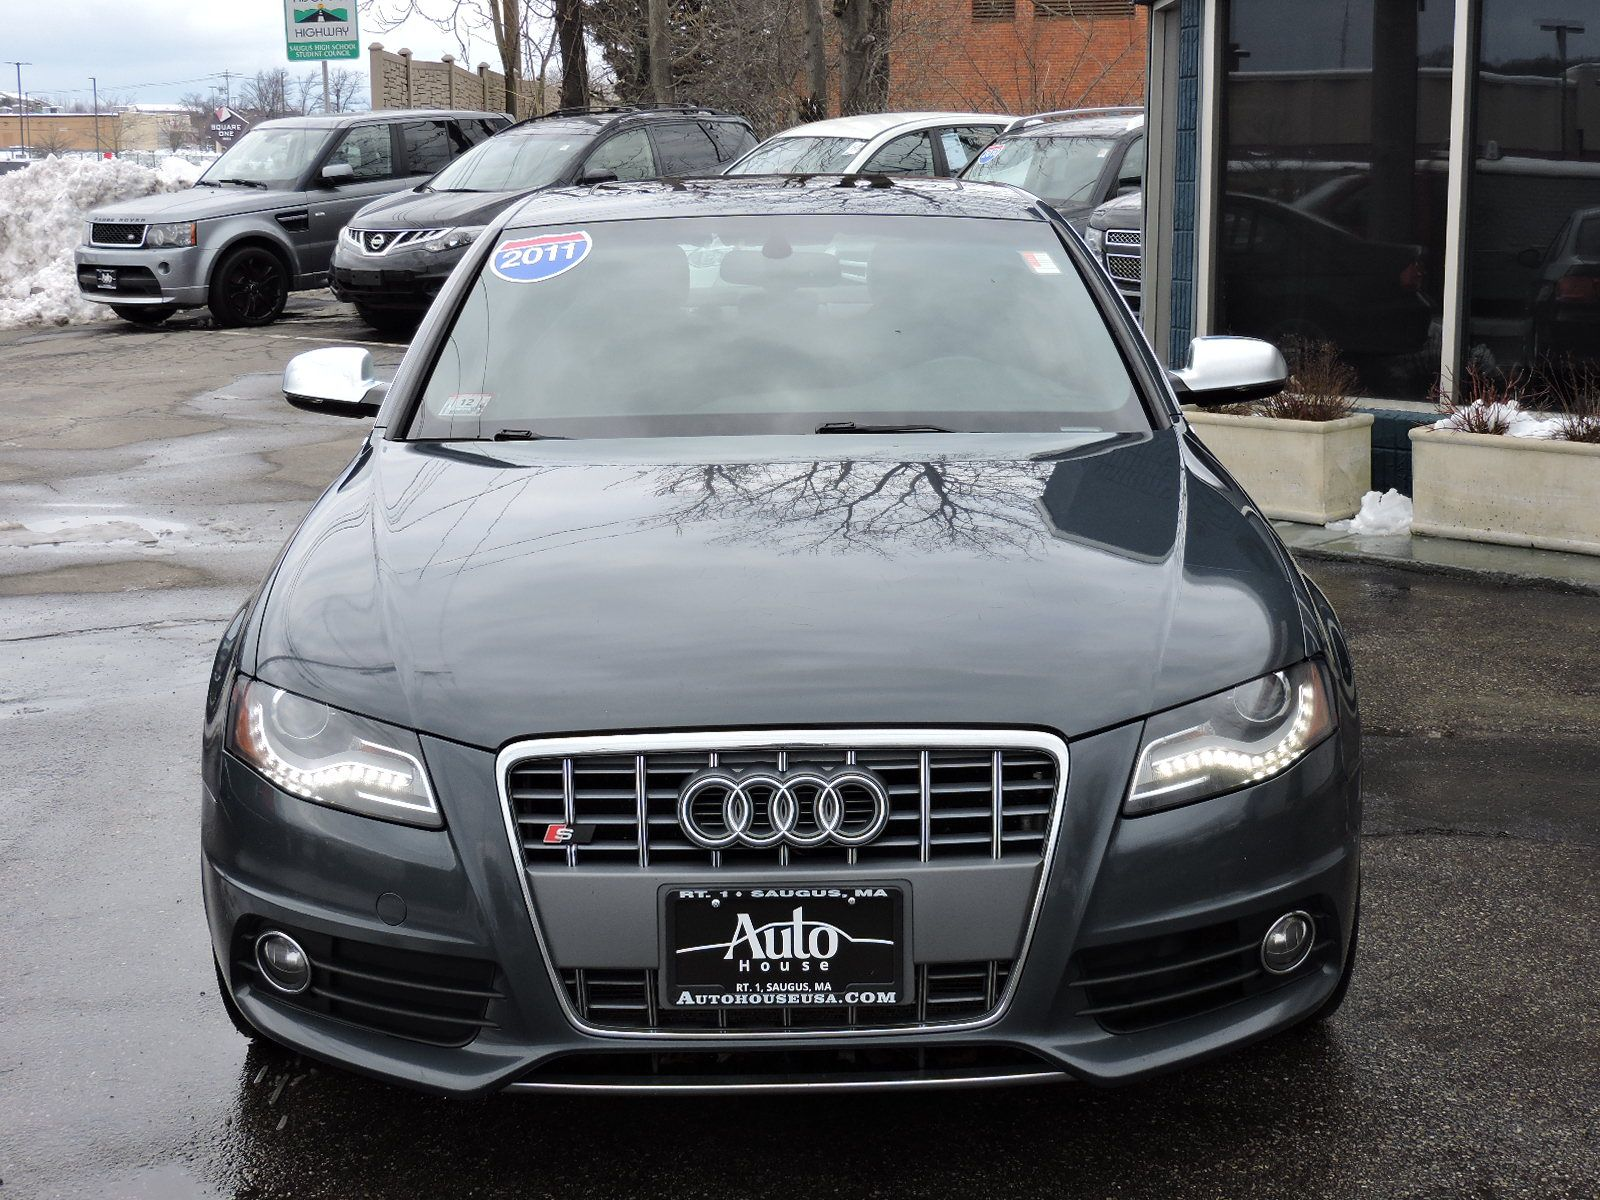 2011 Audi S4 6 Speed Premium Plus AWD